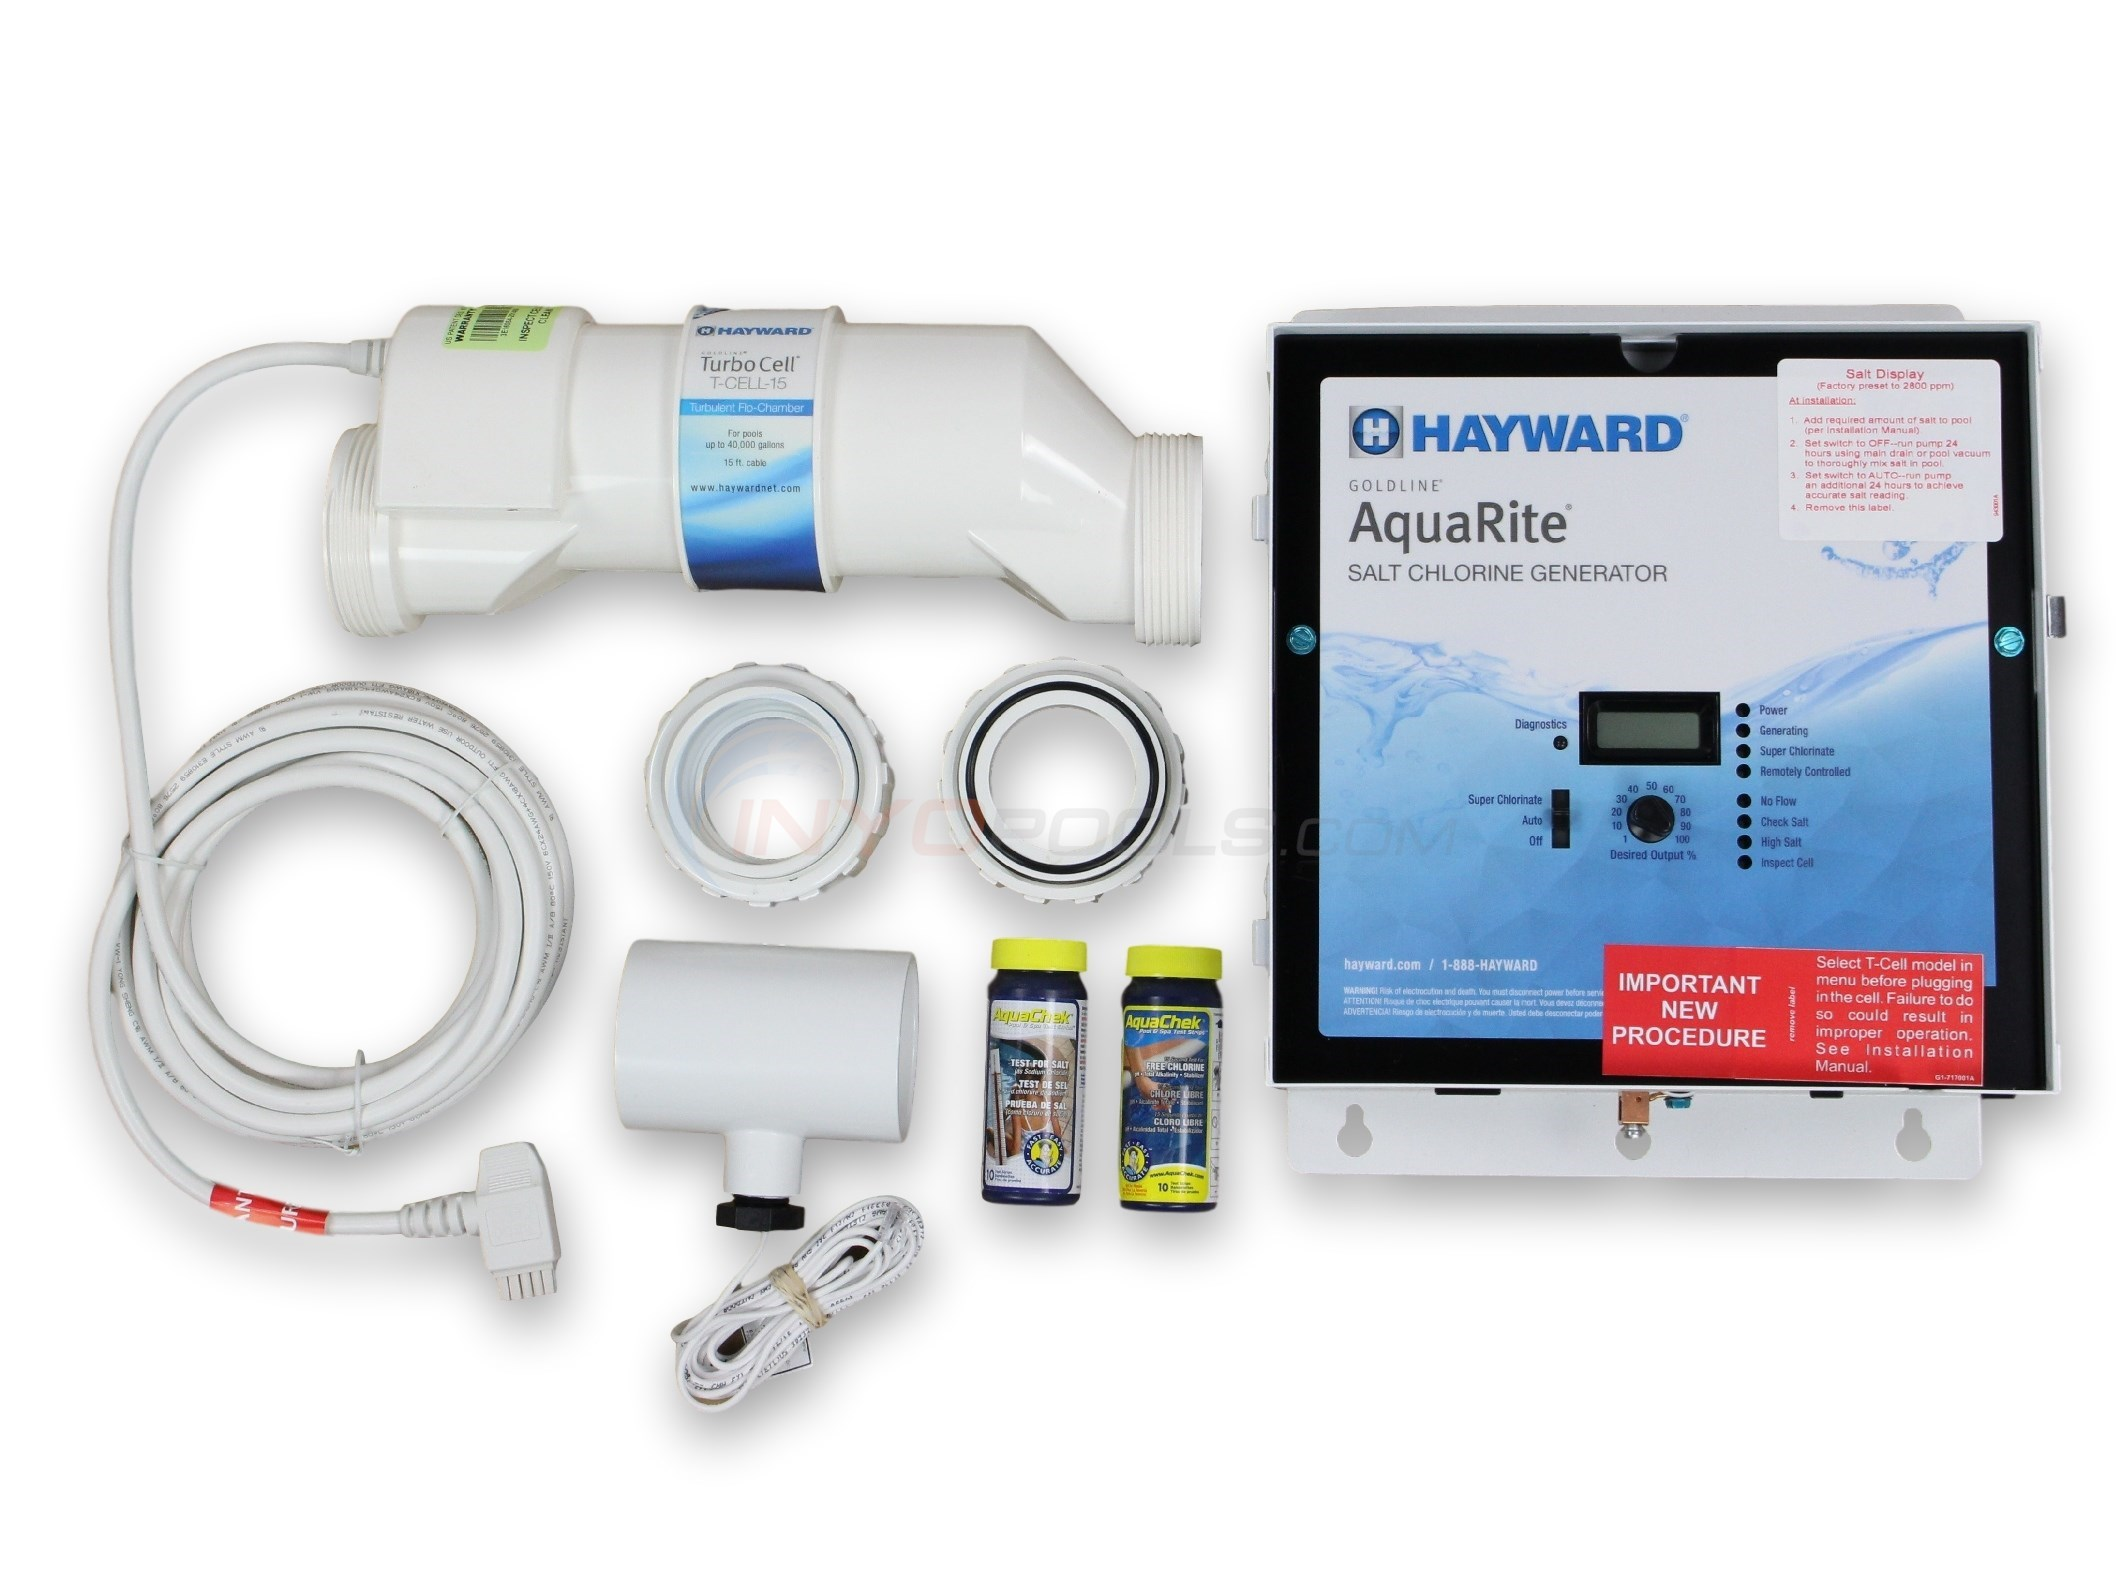 How To Troubleshoot A Hayward Aqua Rite Technology Manual Ups Wiring Diagram With Change Over Switch System As Any Automatic Salt Chlorine Generator Tune Are Needed From Time Troubleshooting Can Be Quick And Simple By